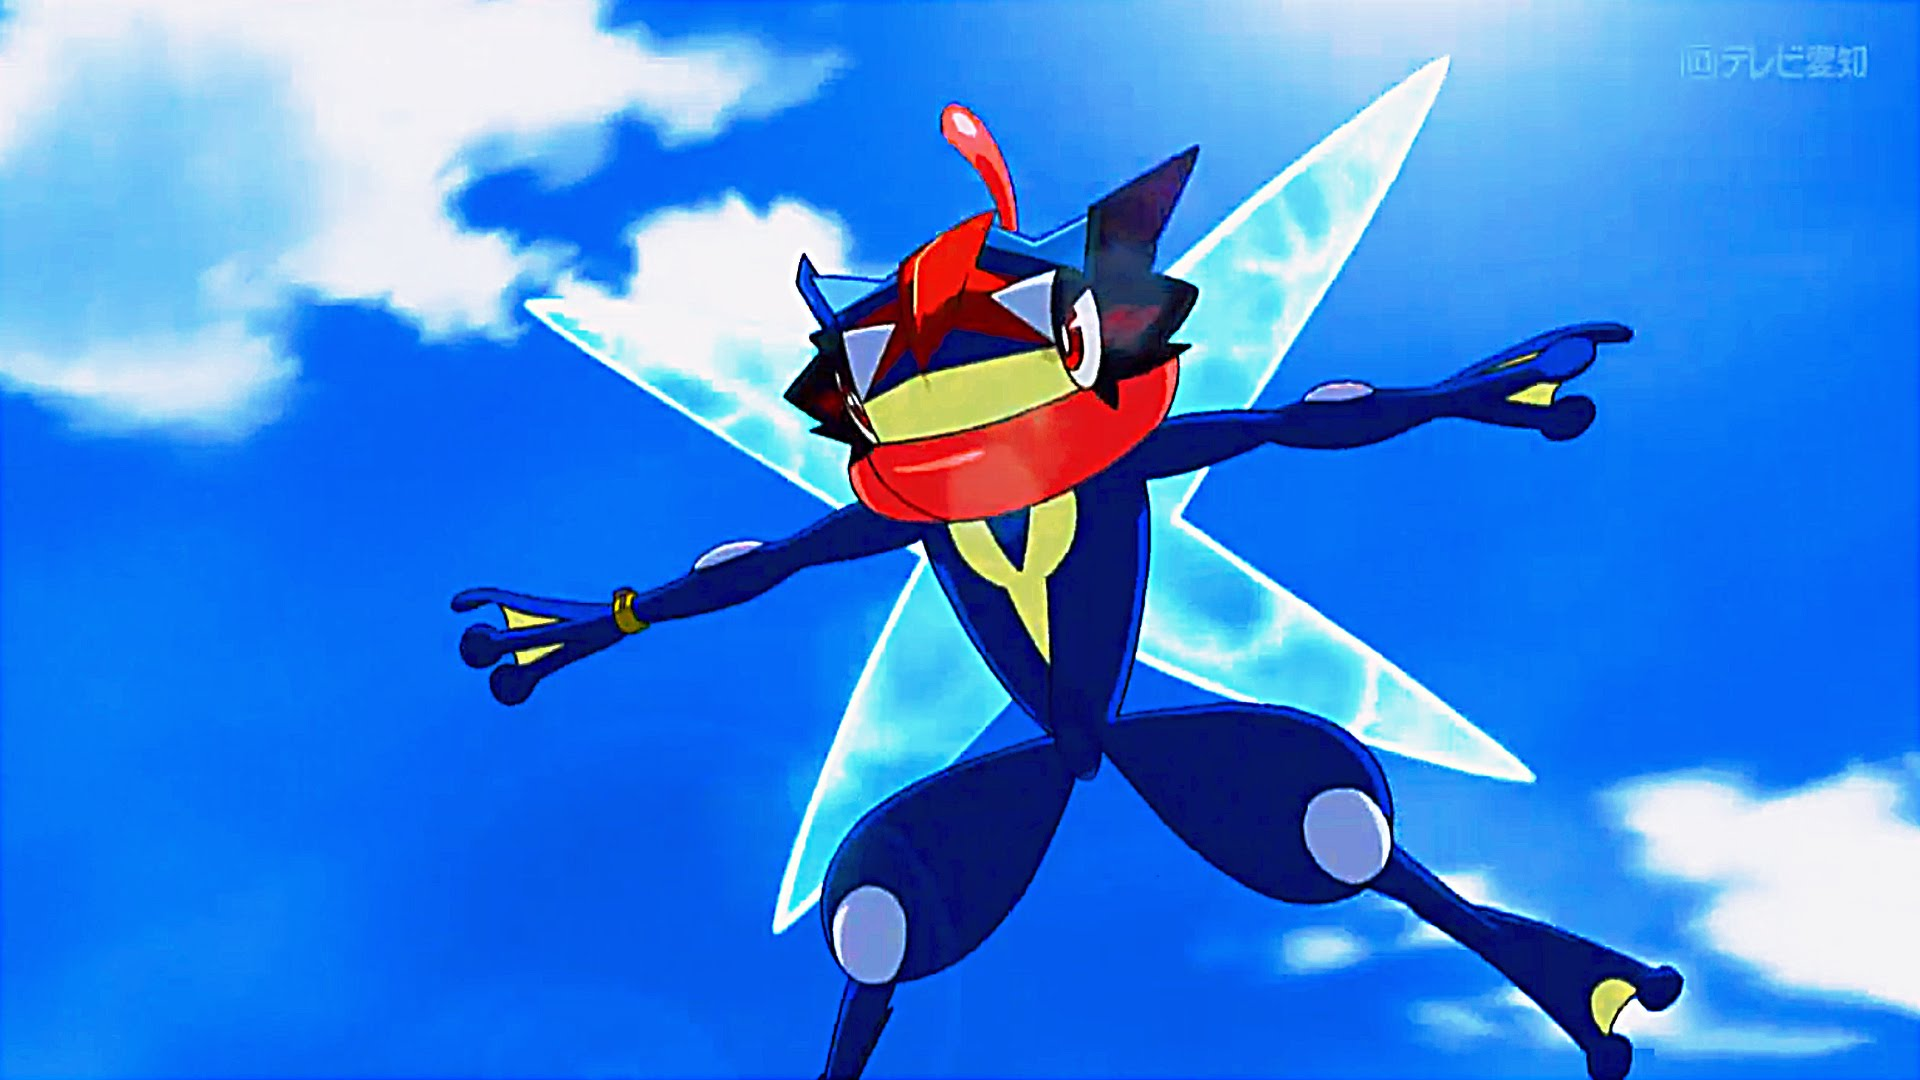 R34 Wallpaper Hd Pokemon What Is The Ash Greninja Form Of Greninja